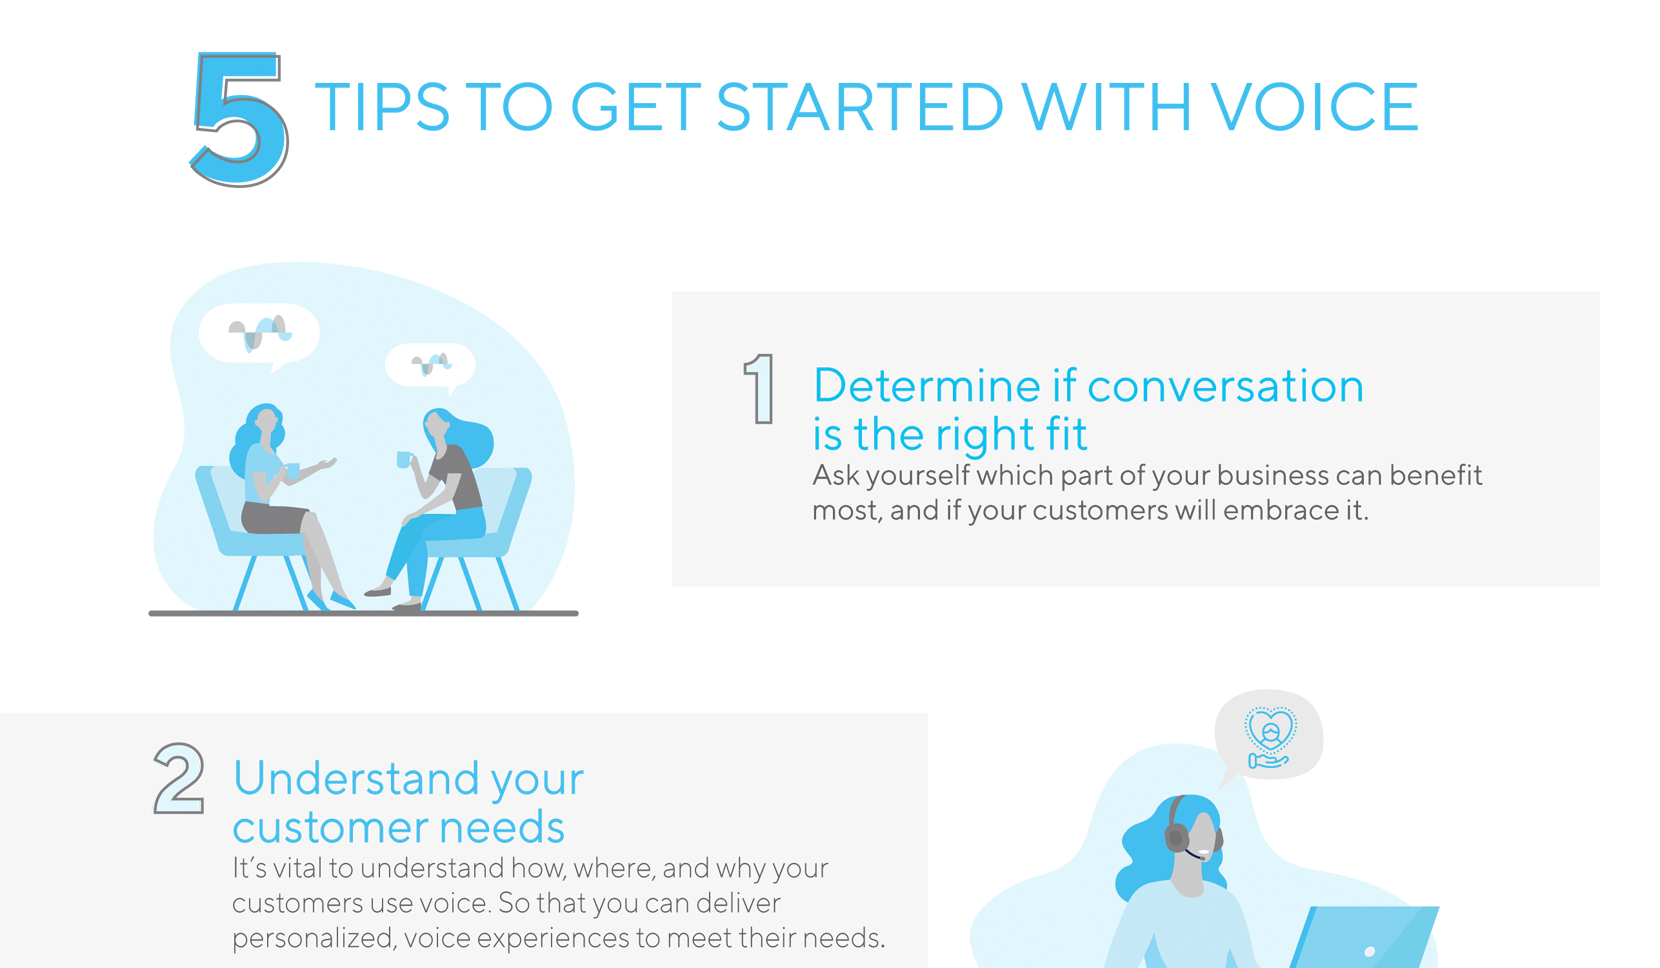 Getting Started with Voice? 5 Tips for Designing, Building & Marketing Your First Voice Technology Experience